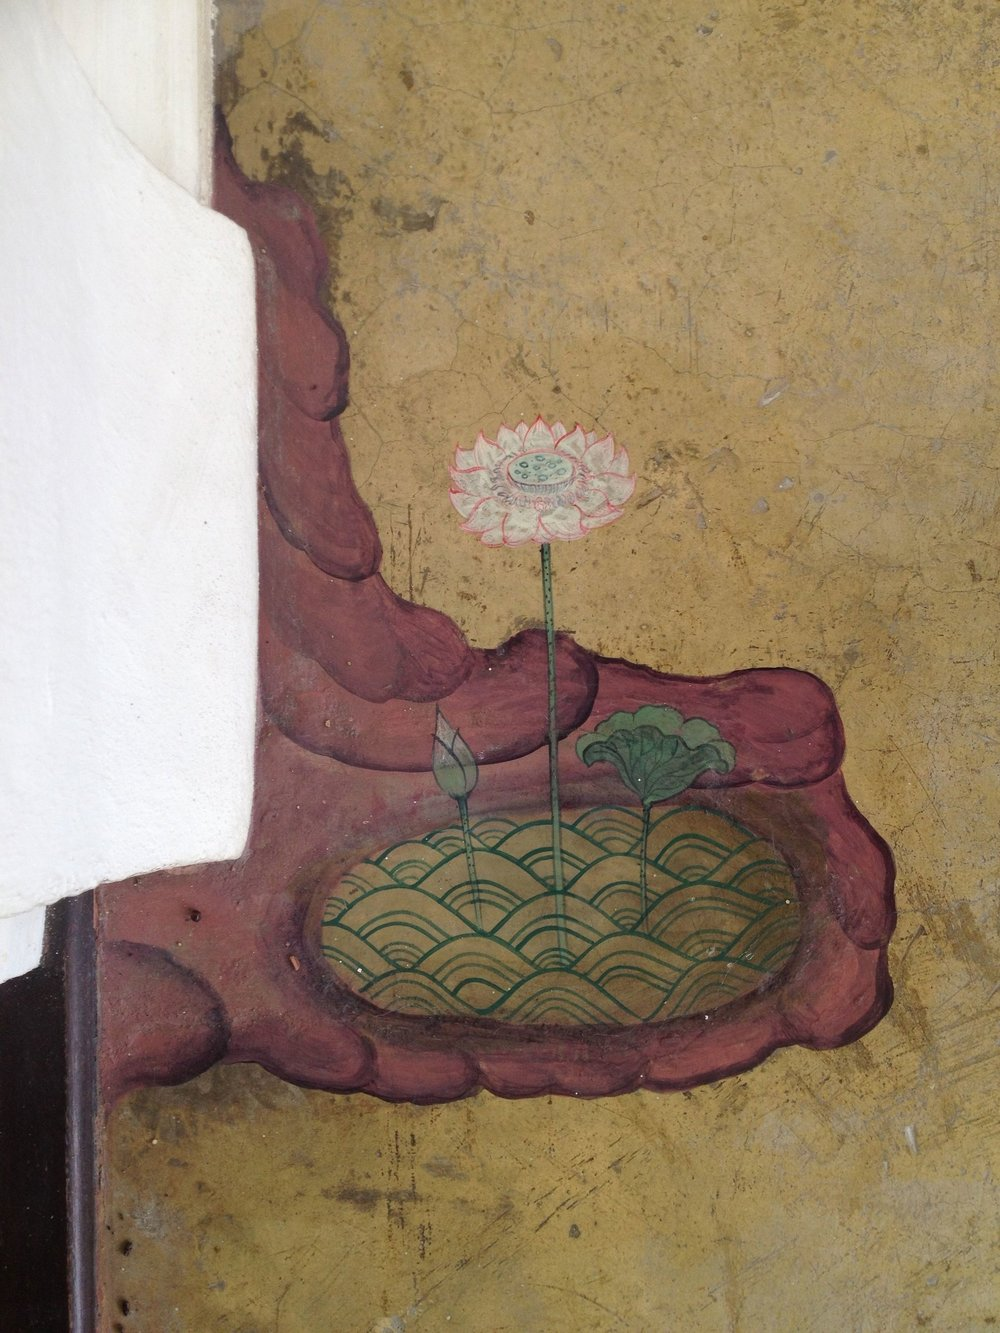 There were wonderful little paintings all over the hallway floors of the ashram